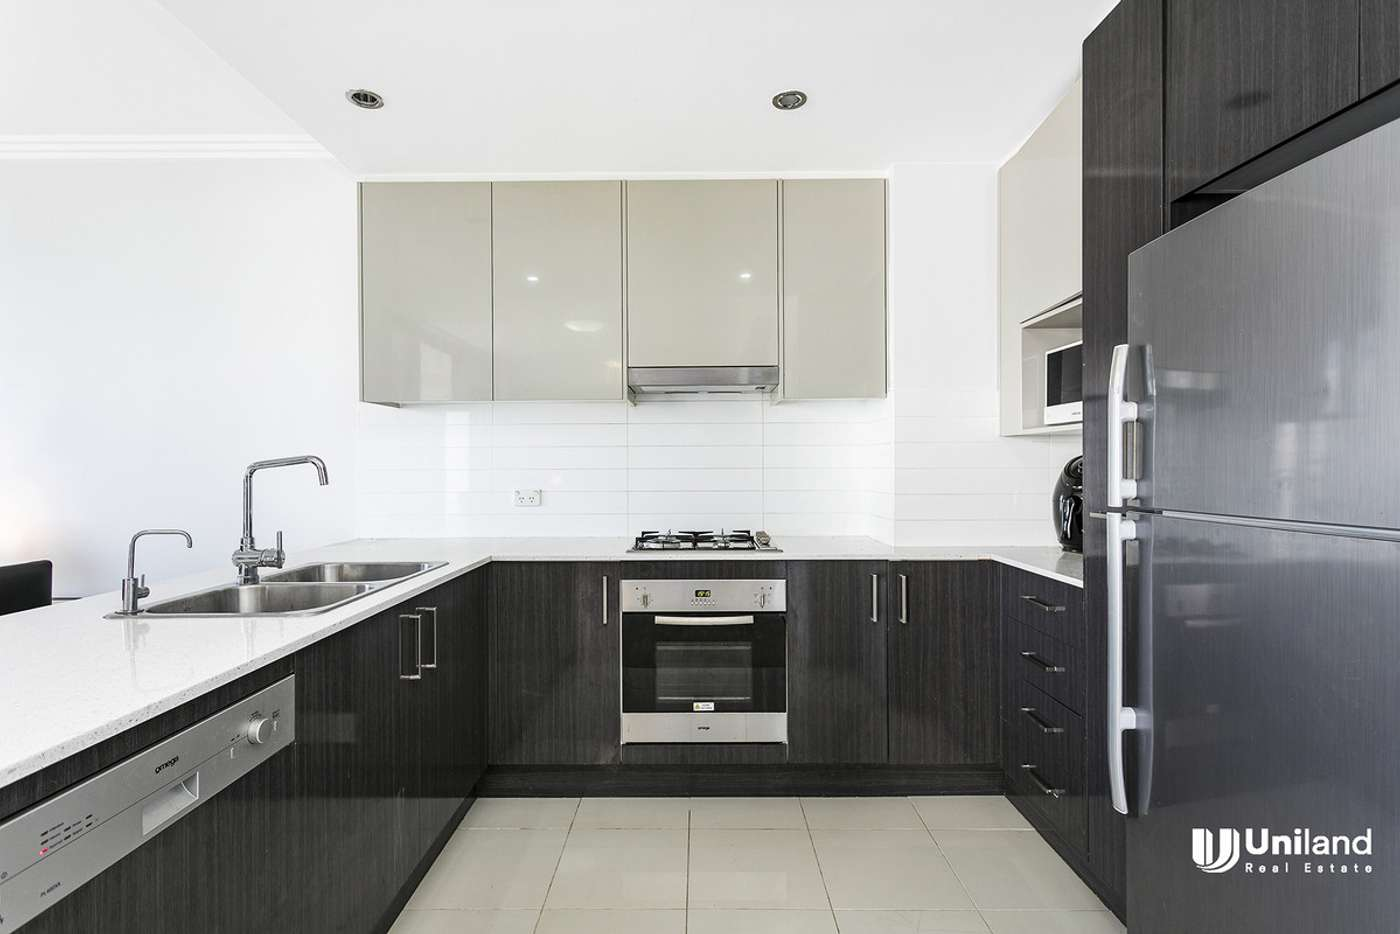 Fifth view of Homely apartment listing, 62/20 Victoria Road, Parramatta NSW 2150